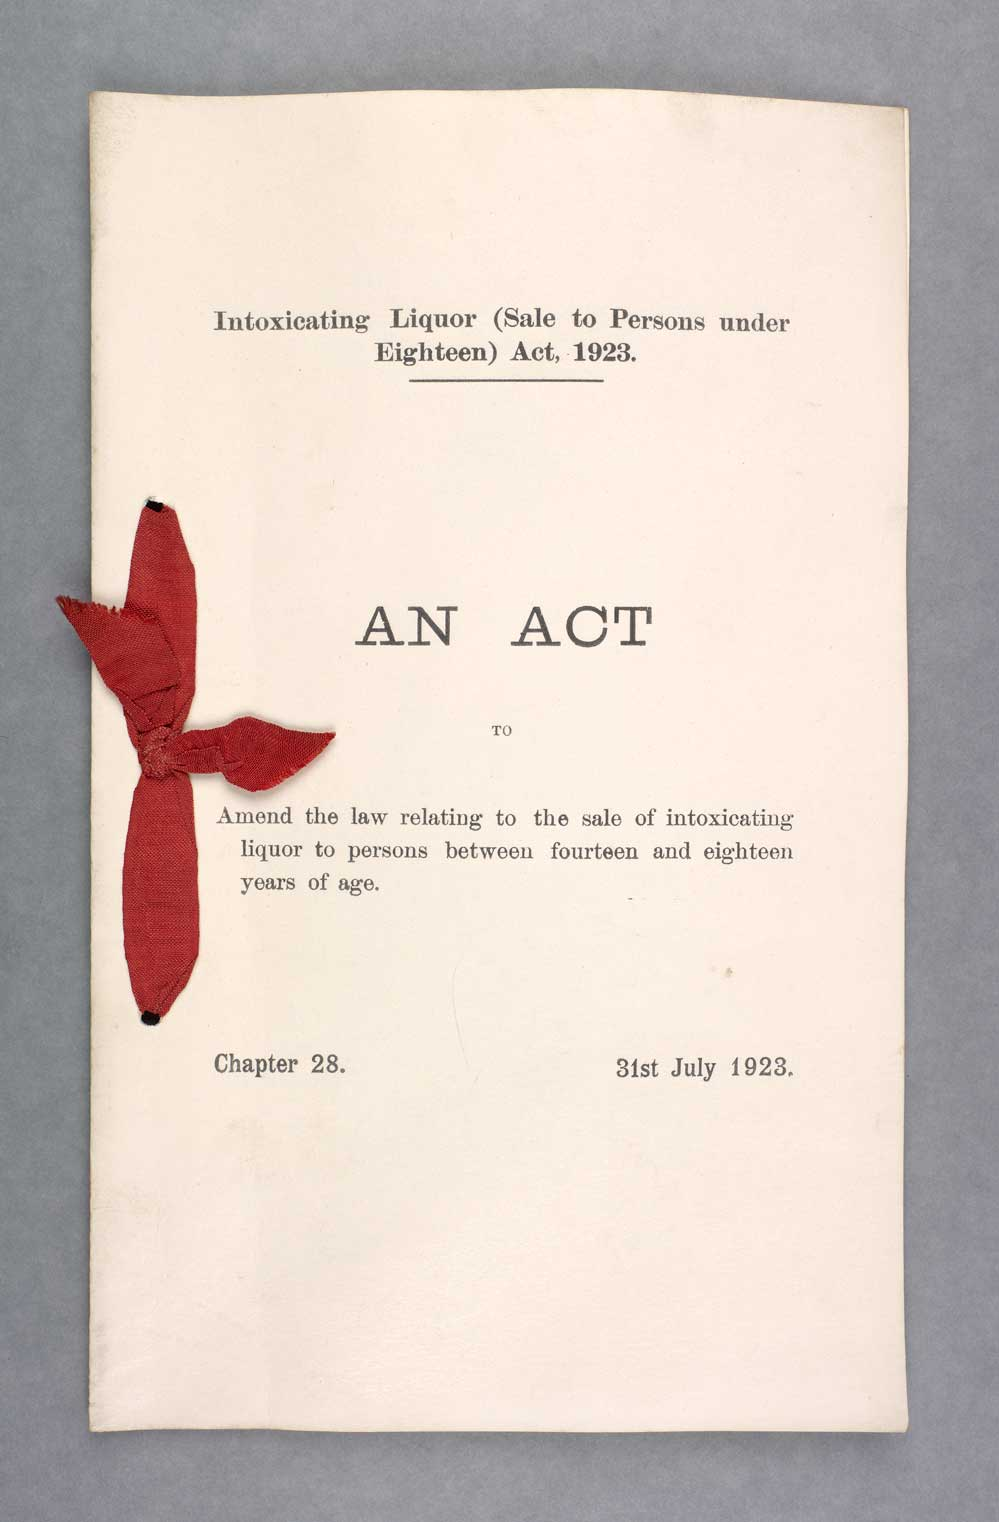 Intoxicating Liquor (Sale to Persons under Eighteen) Act 1923